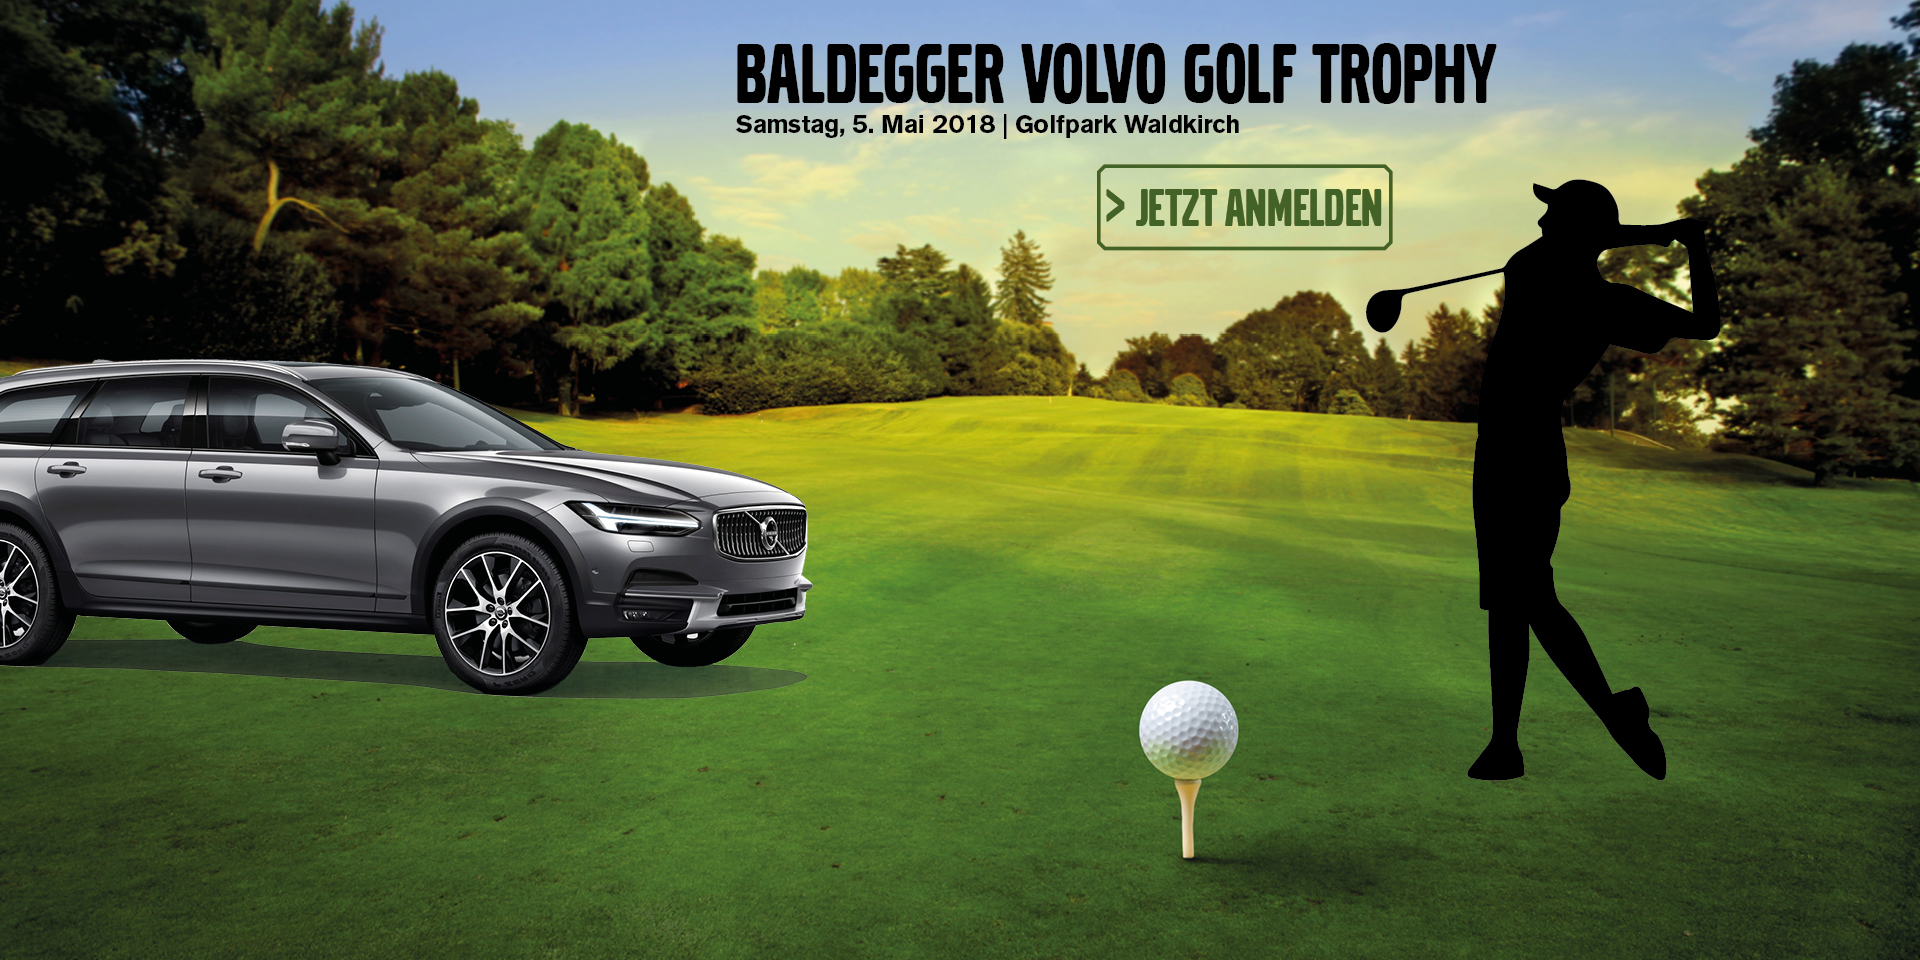 Baldegger Volvo Golf Trophy